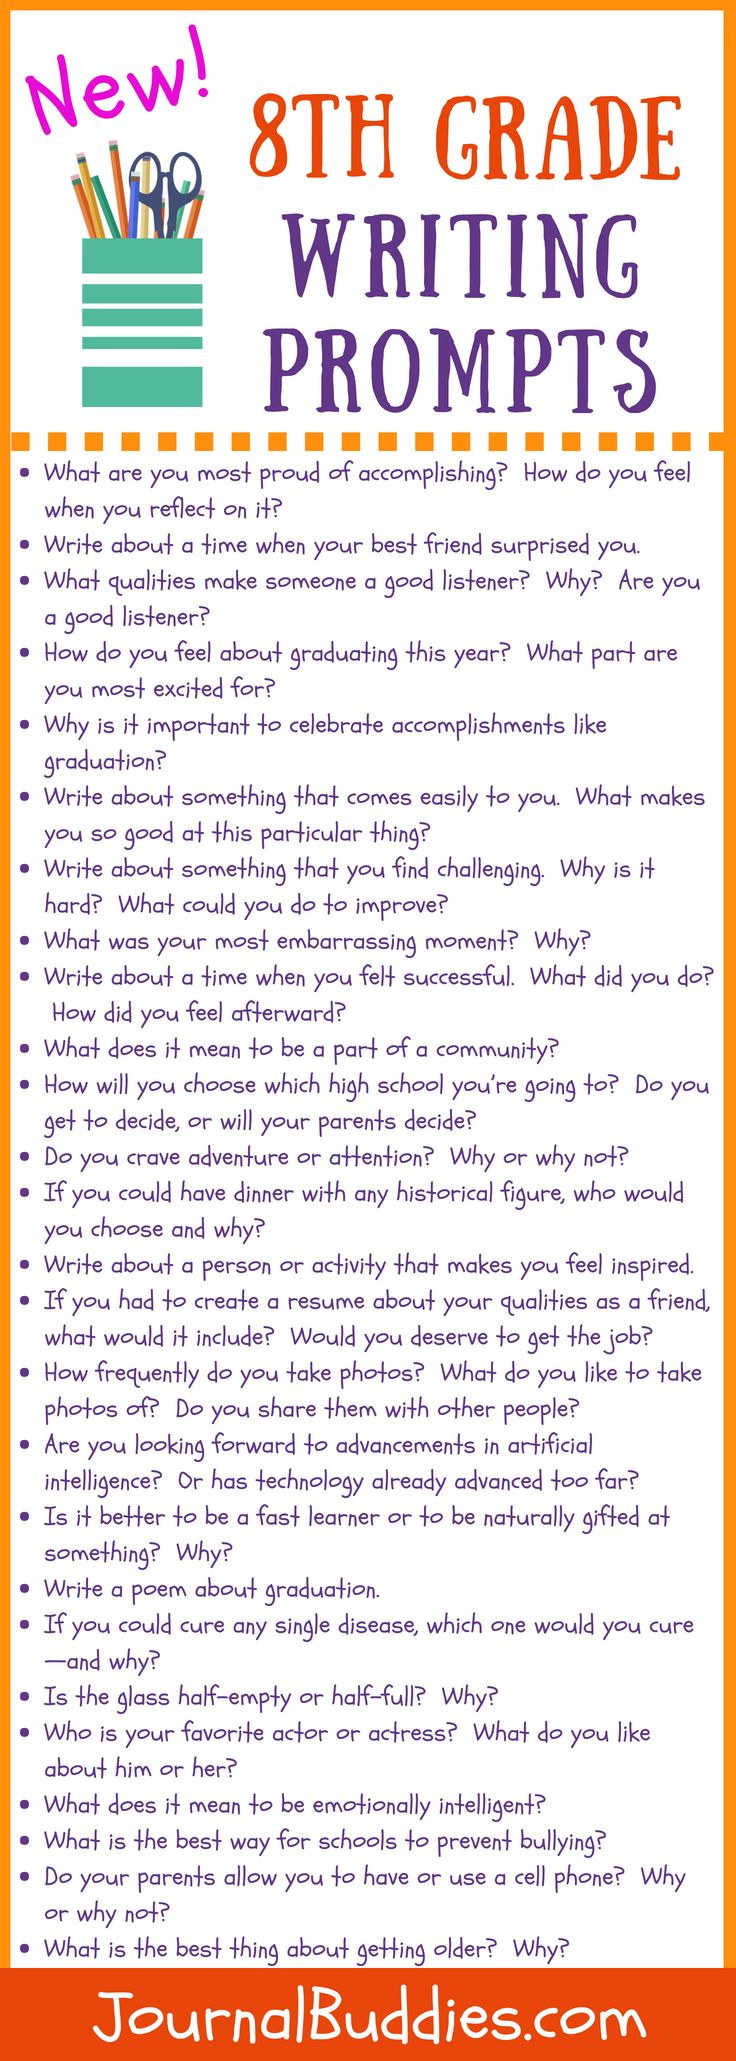 New Eighth Grade Writing Prompts